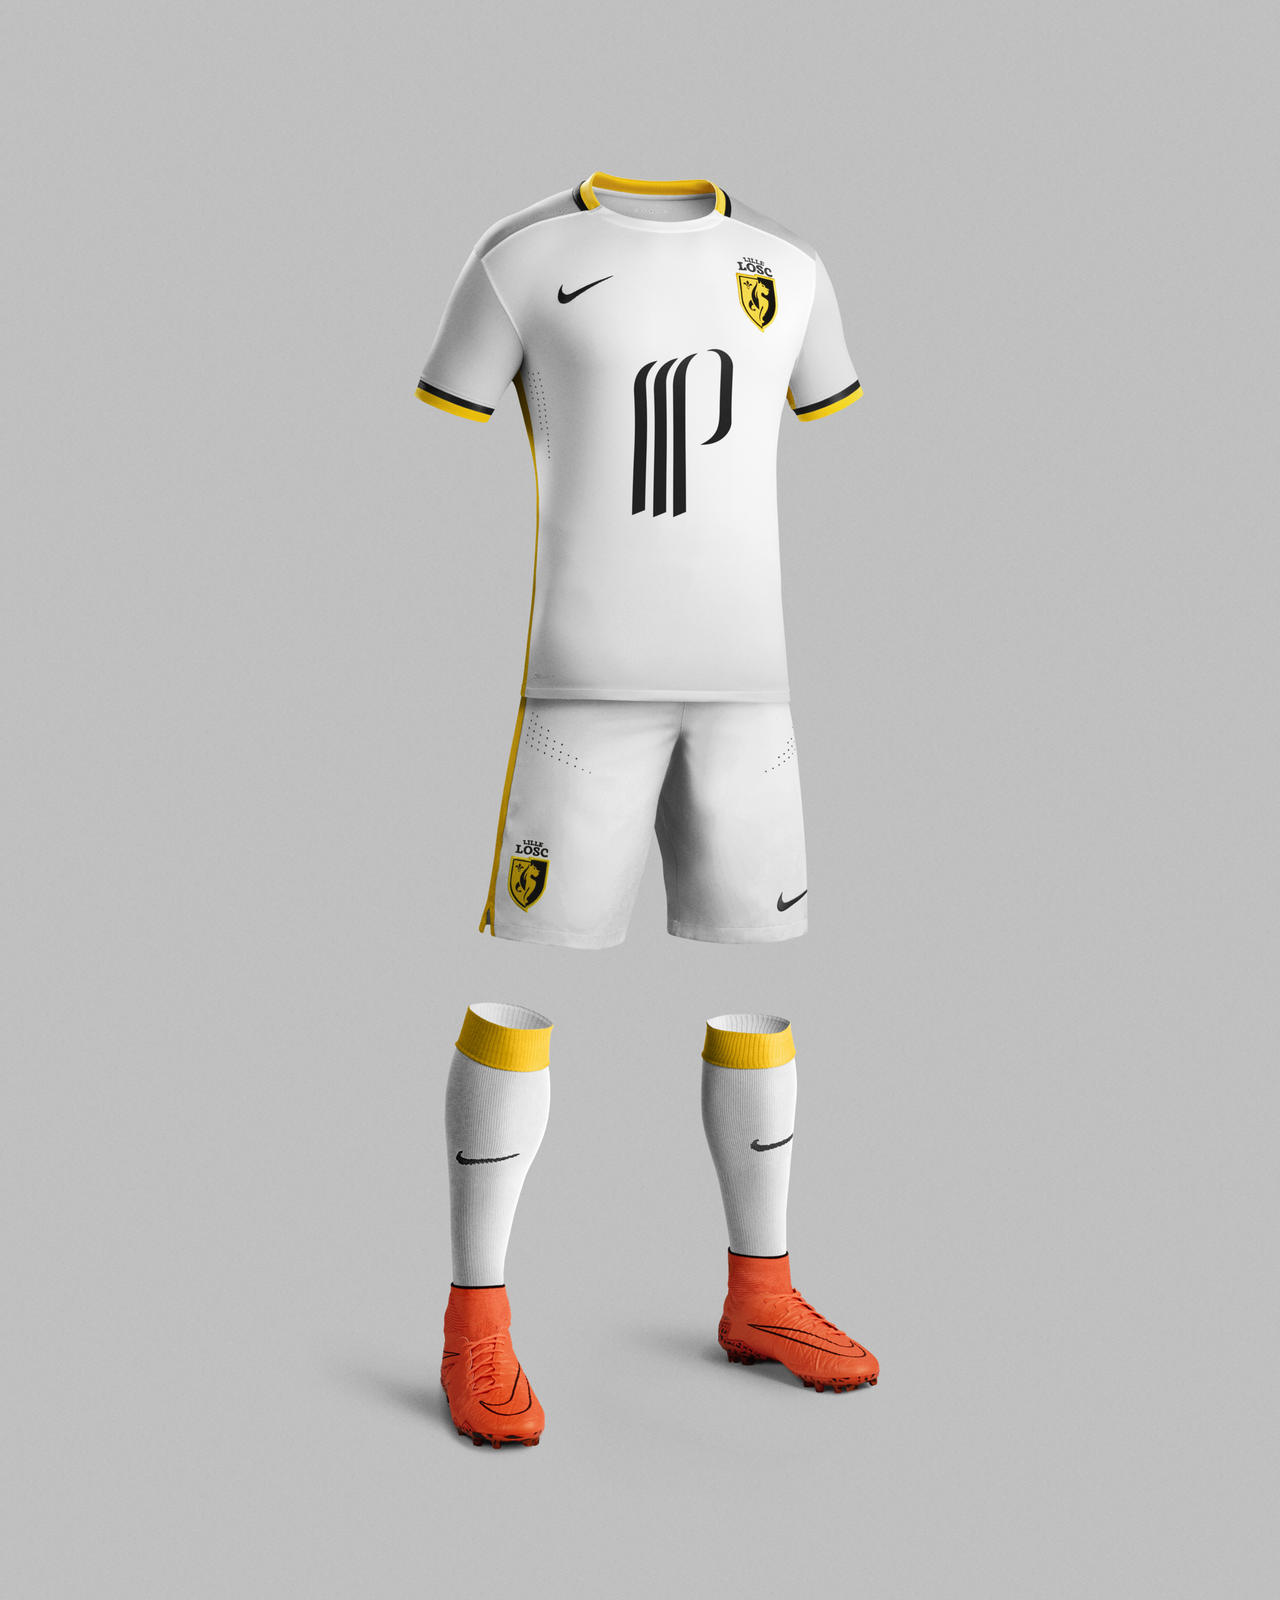 huge selection of 3926b b3e9e Traditional 2015-16 Away Kit for Lille OSC Inspired by Local ...